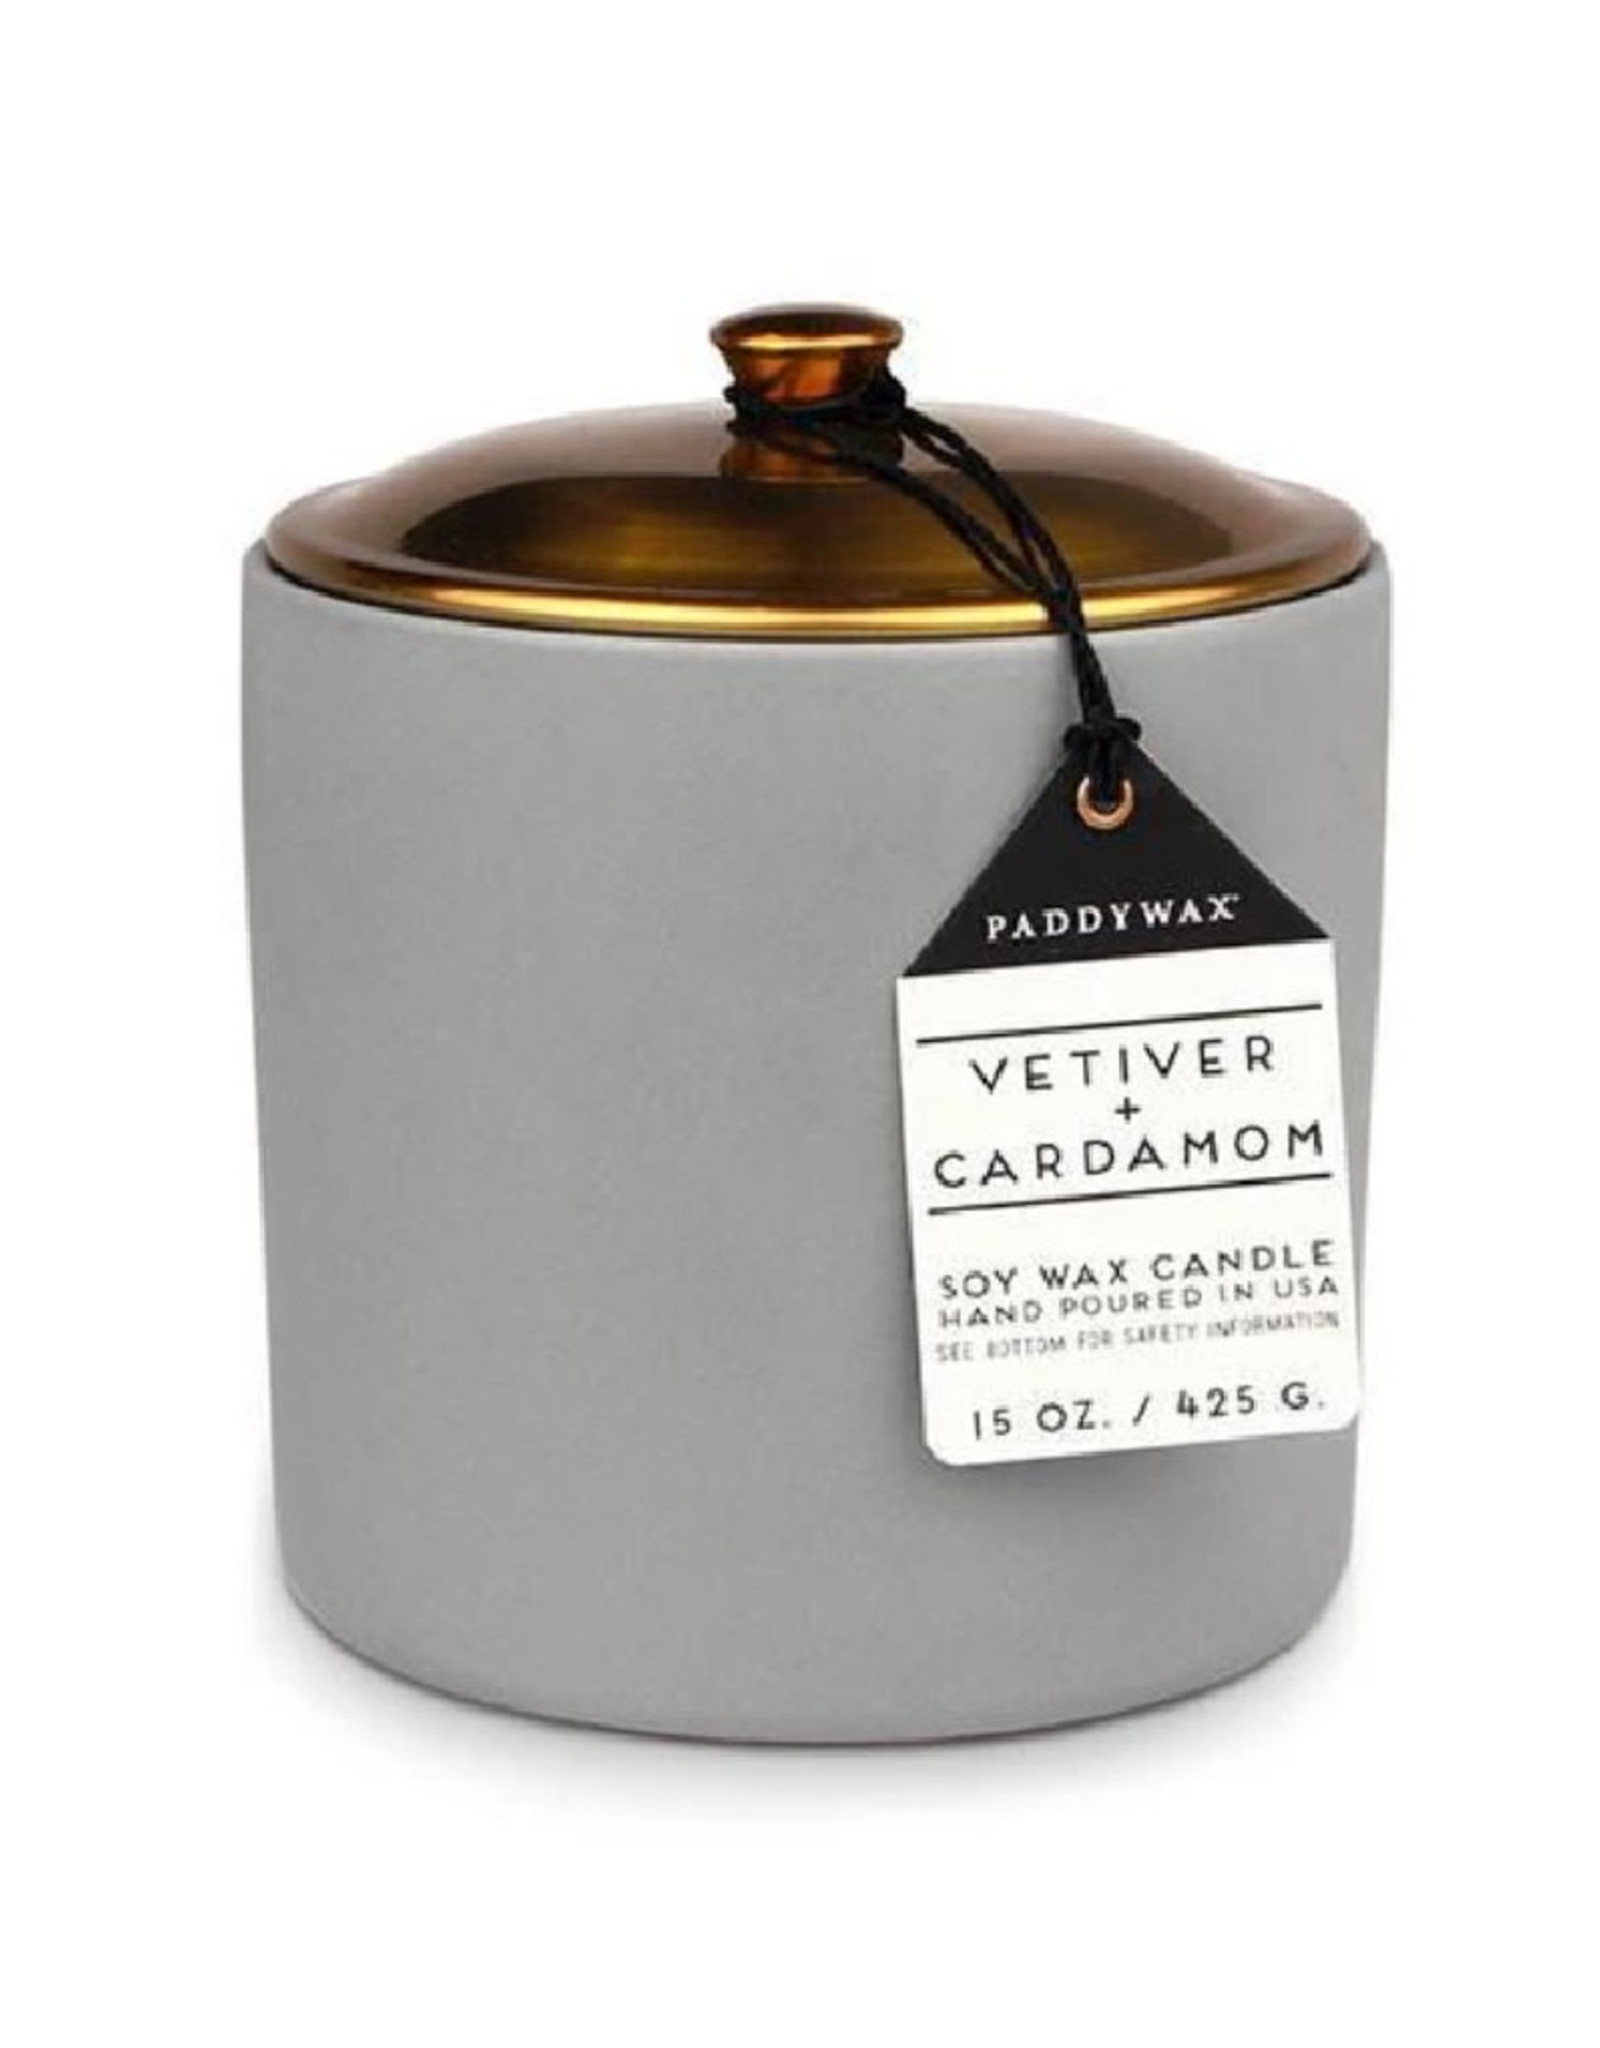 Hygge Candle - Vetiver & Cardamom - 15 oz.